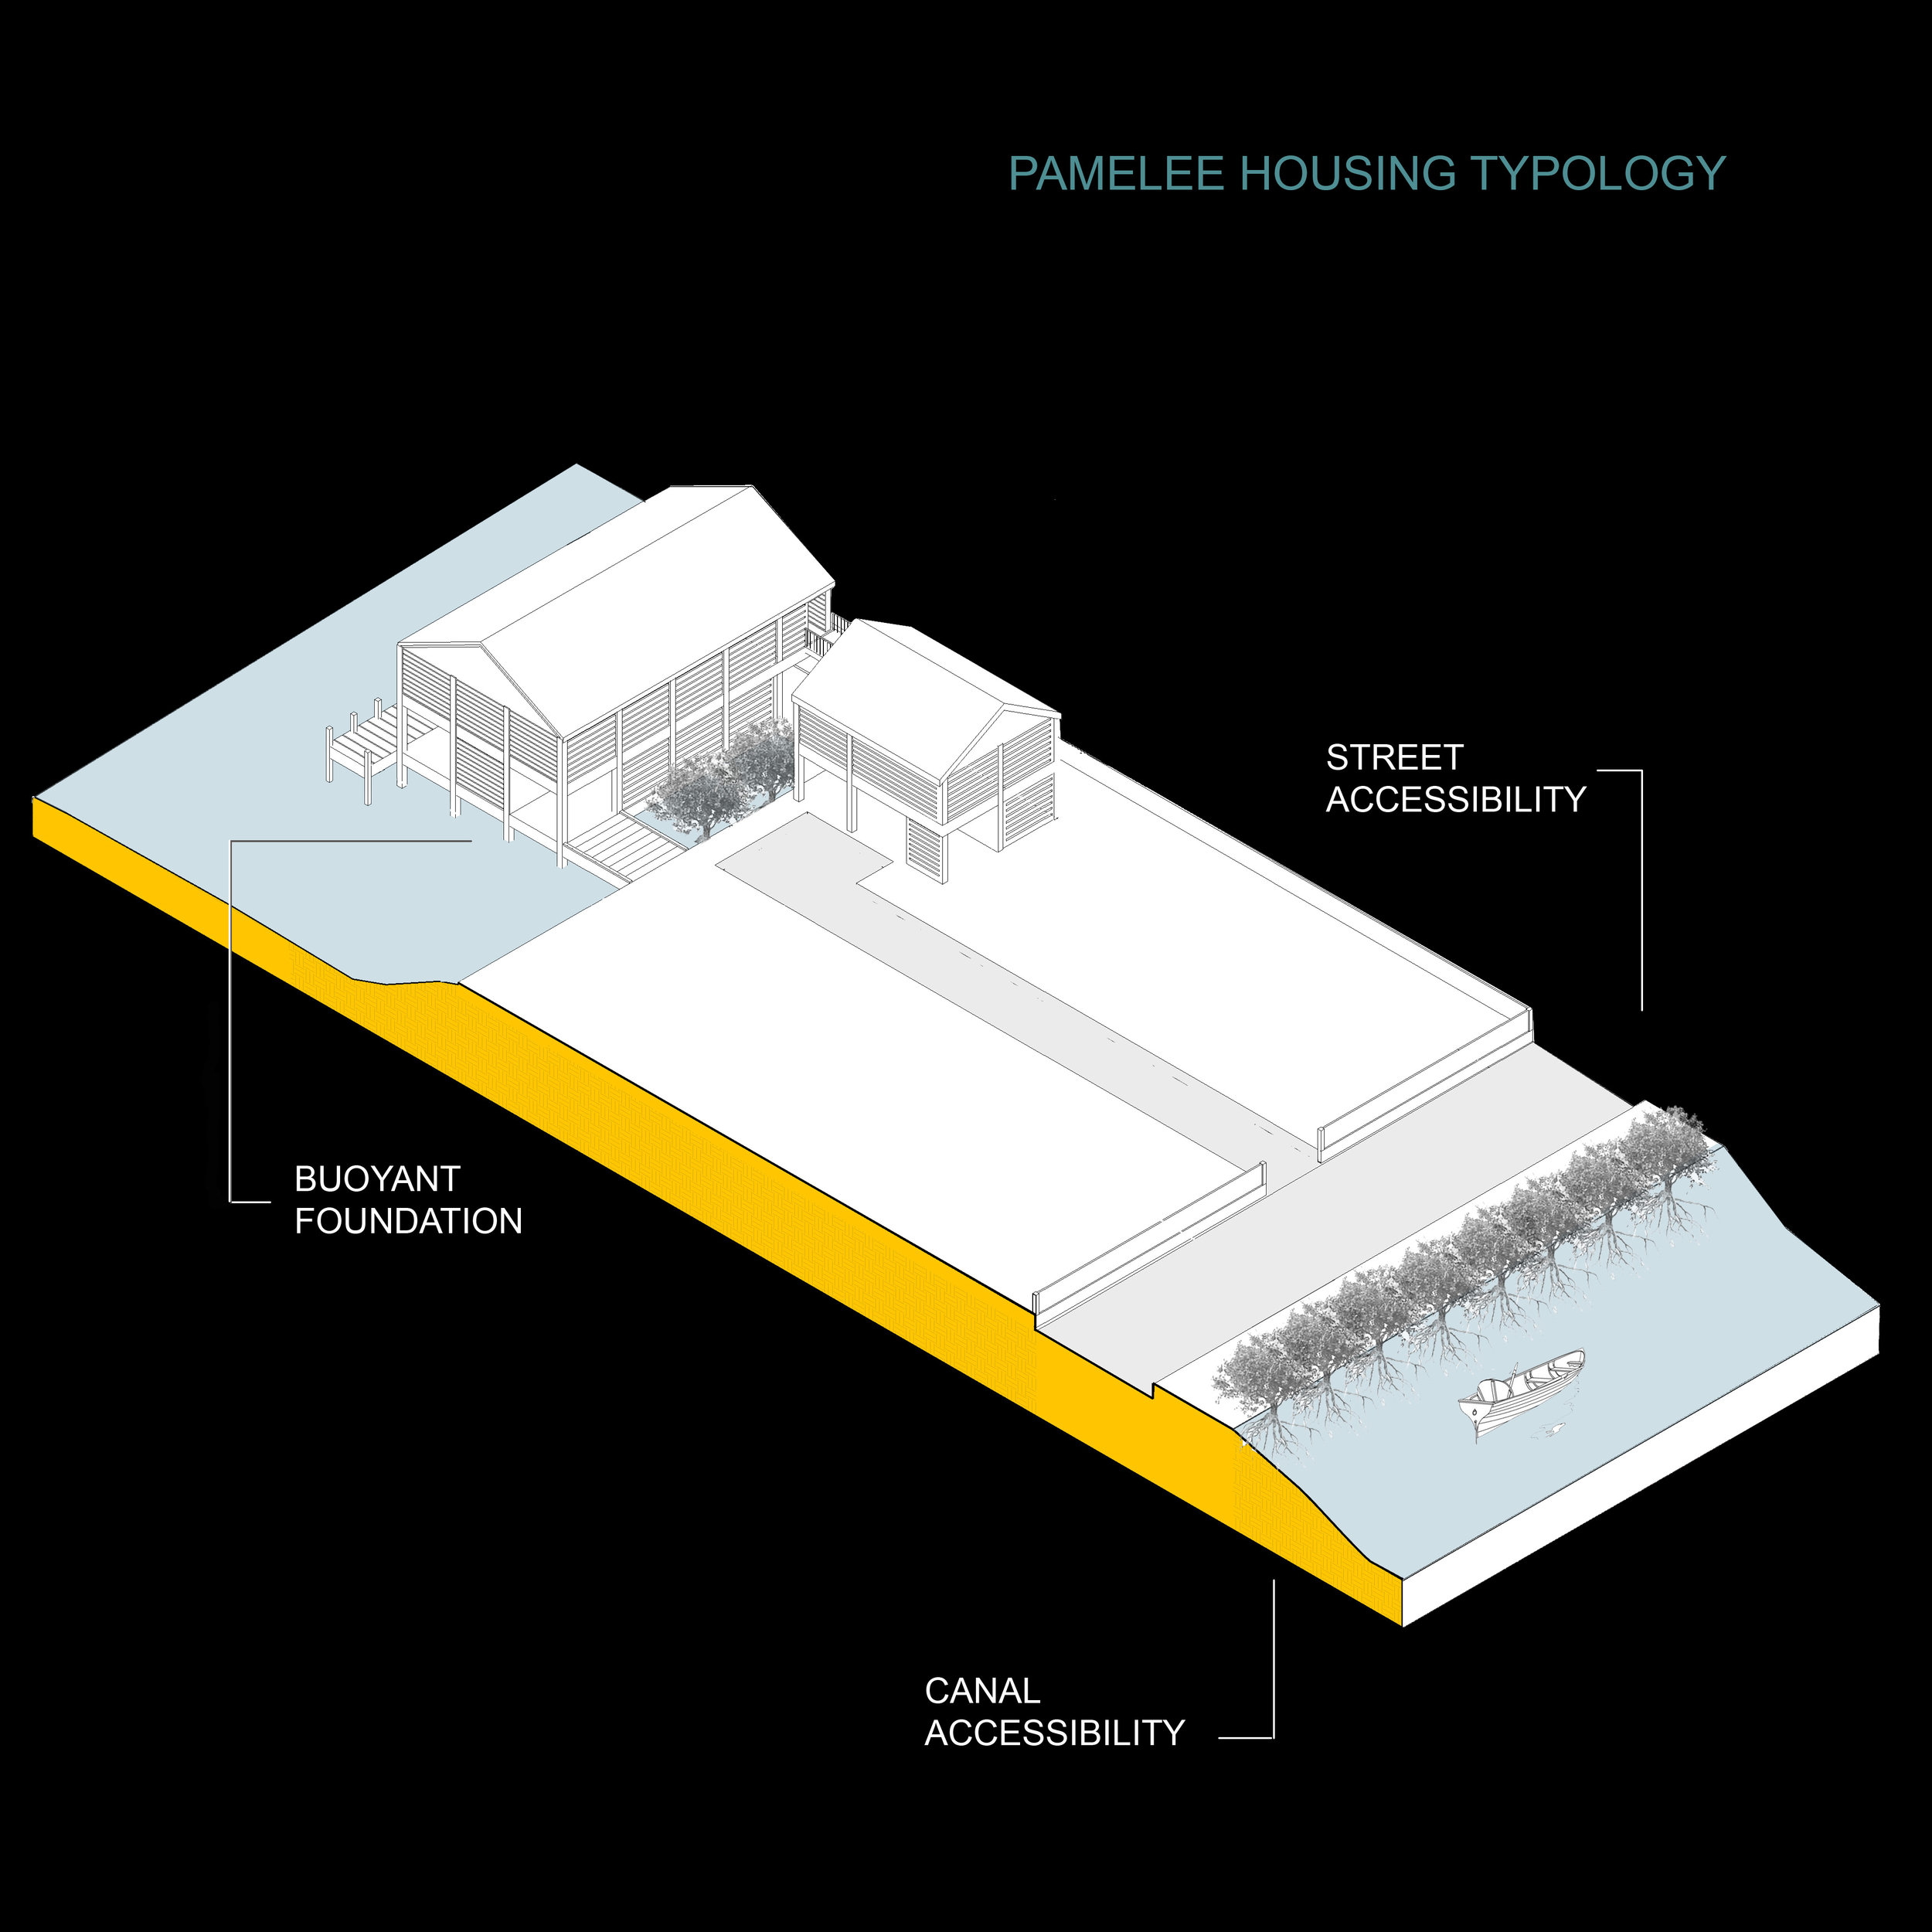 PROPOSED HOUSING TYPOLOGY